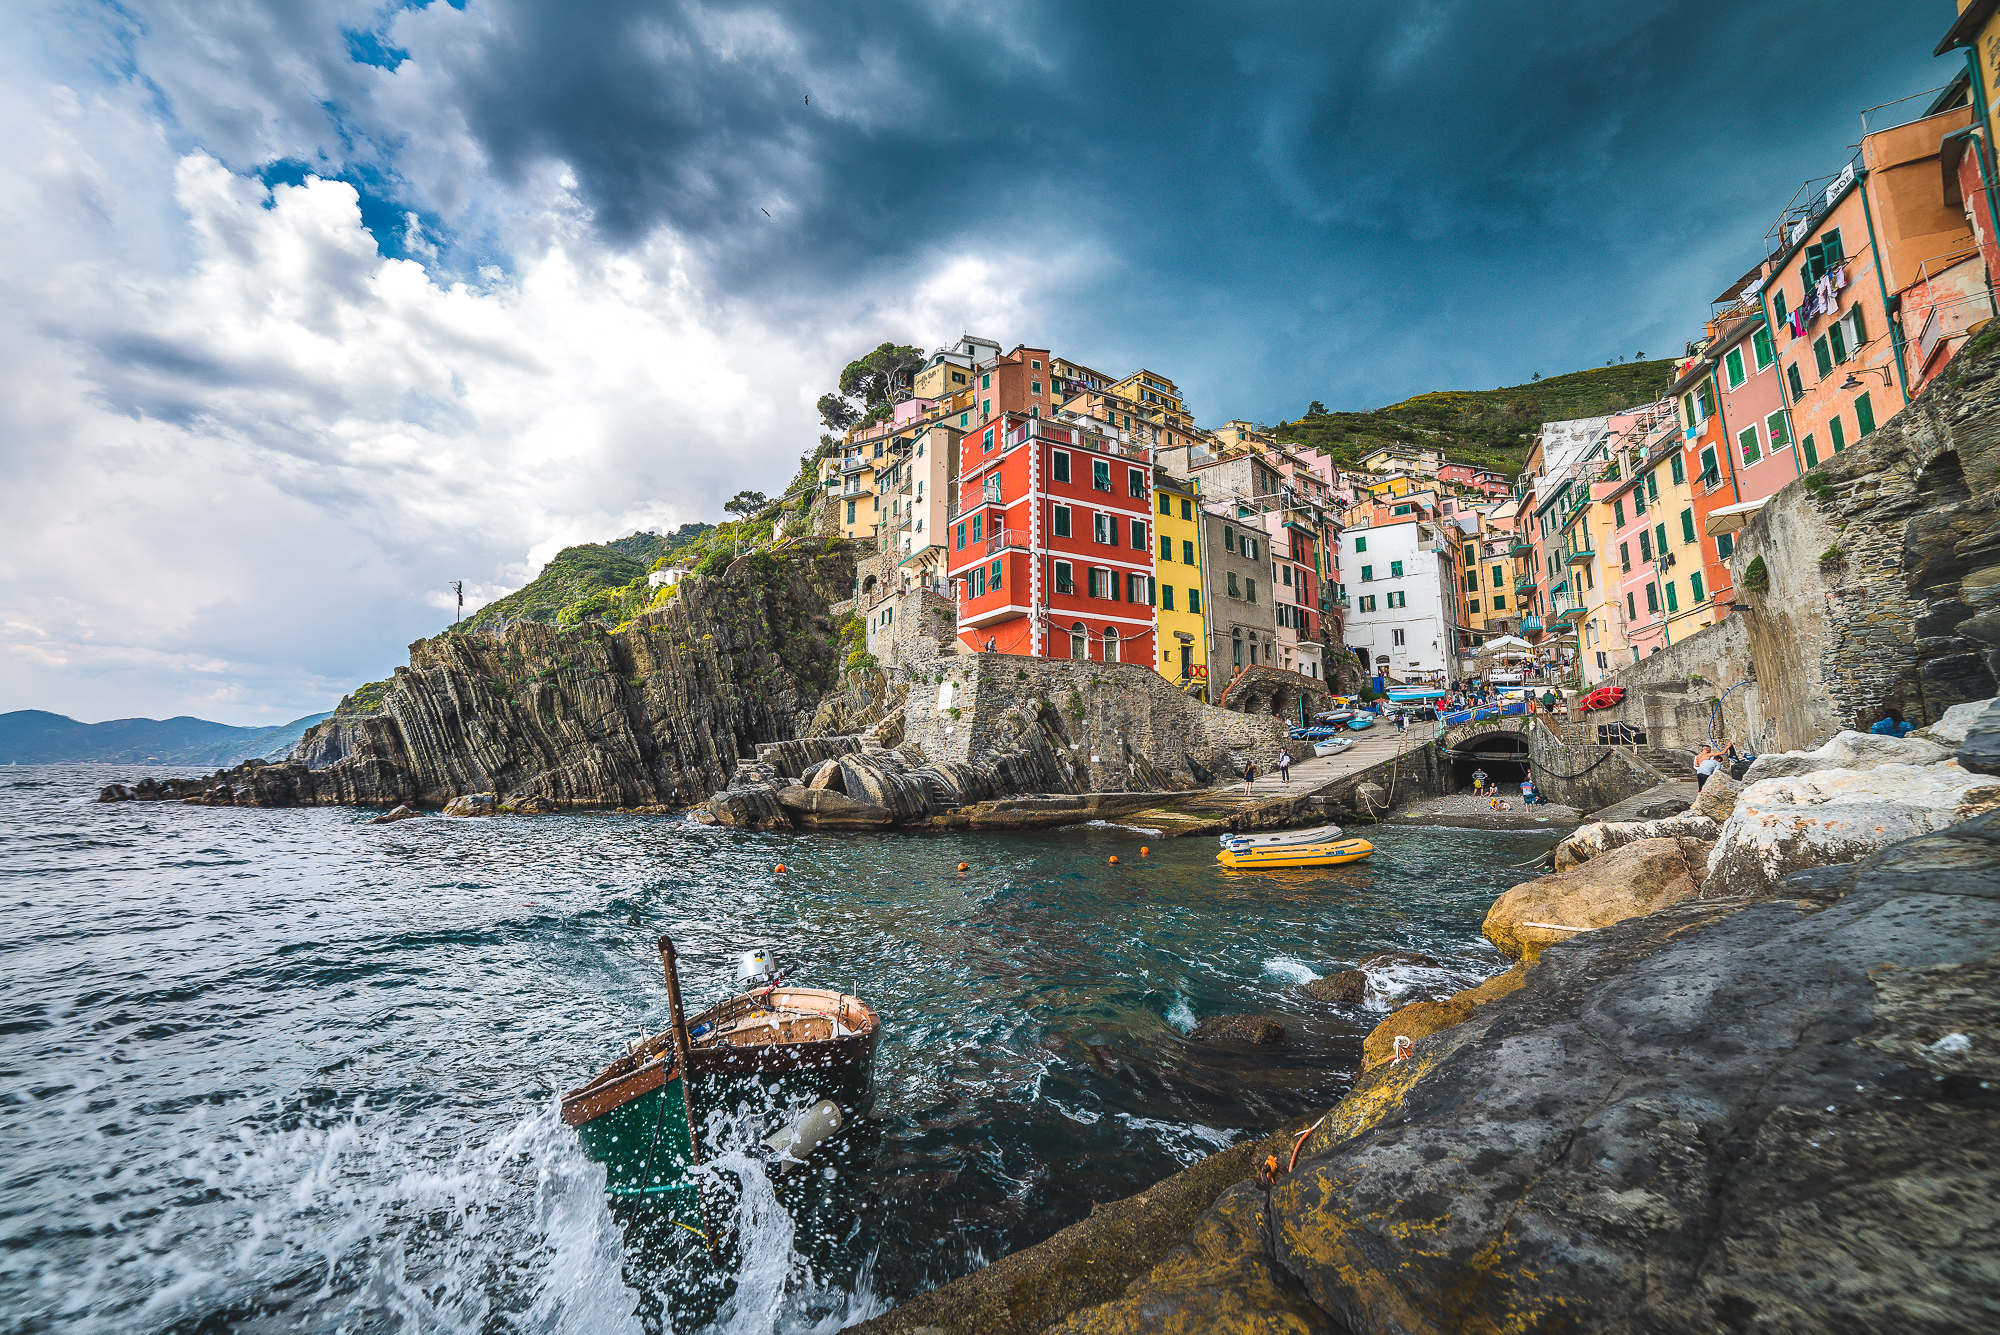 Riomaggiore during a storm, Italy